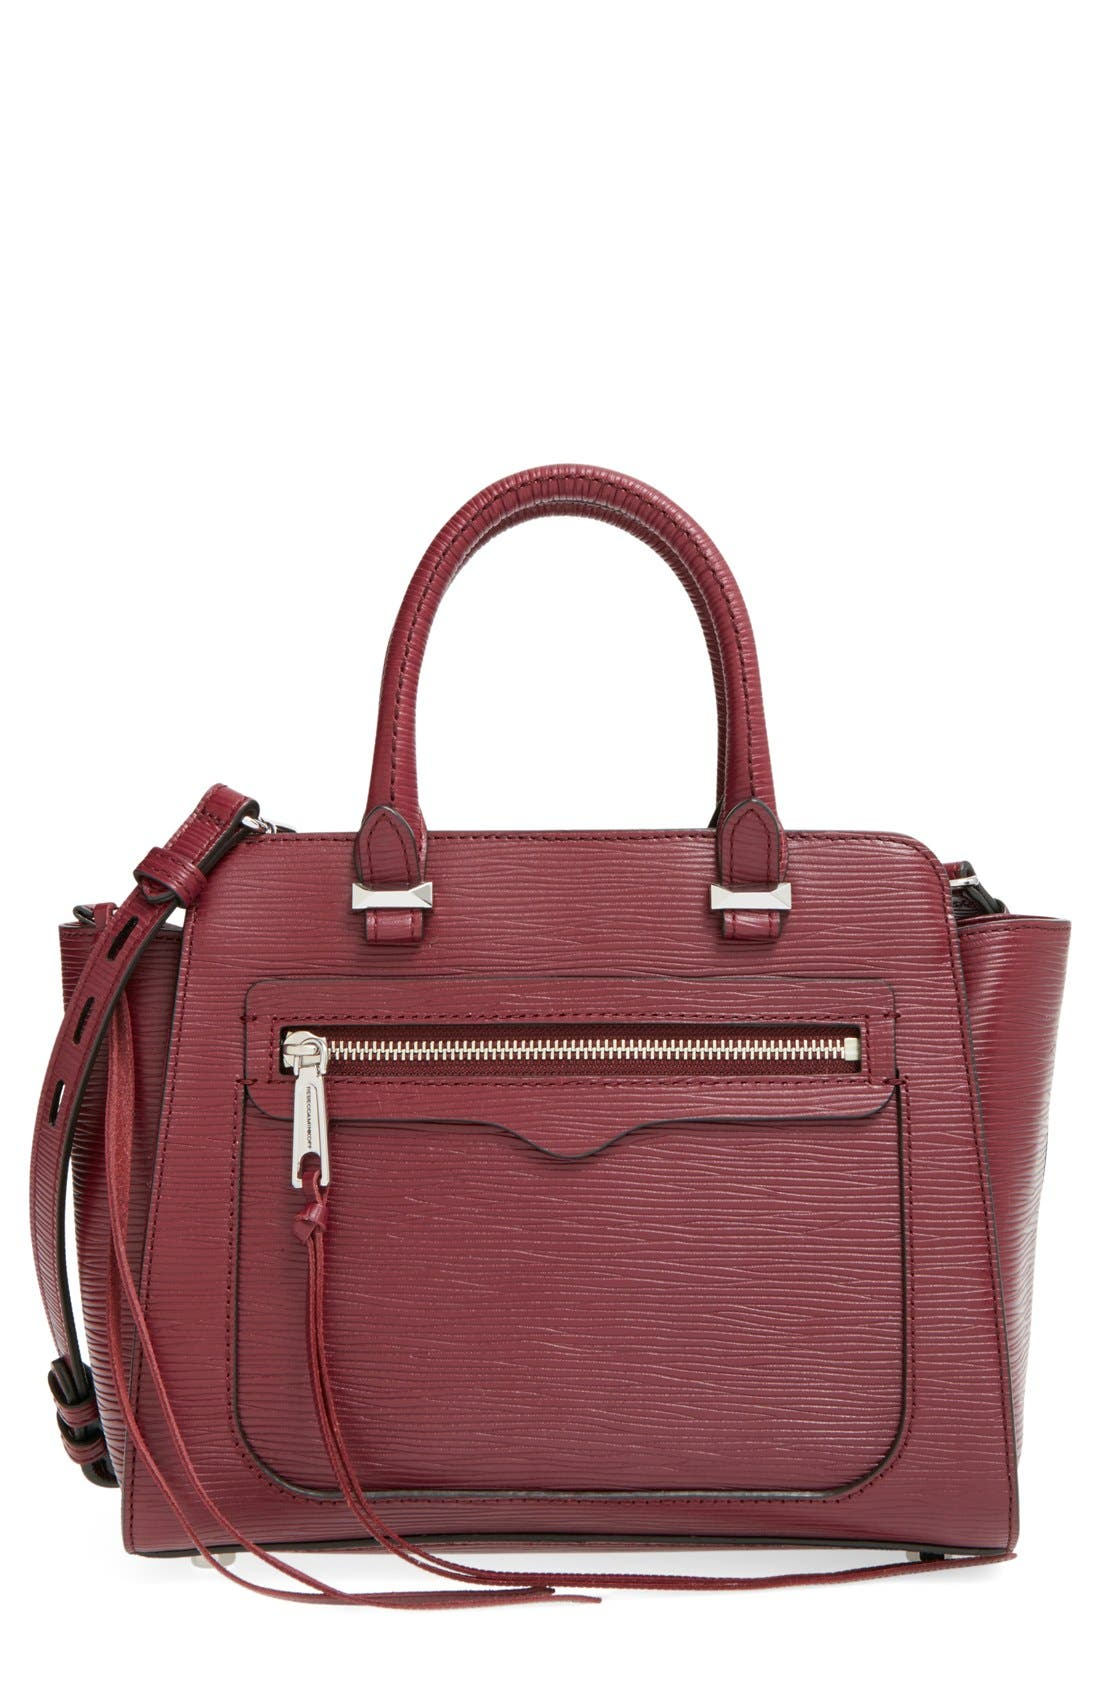 REBECCA MINKOFF,                             'Mini Avery' Tote,                             Main thumbnail 1, color,                             930